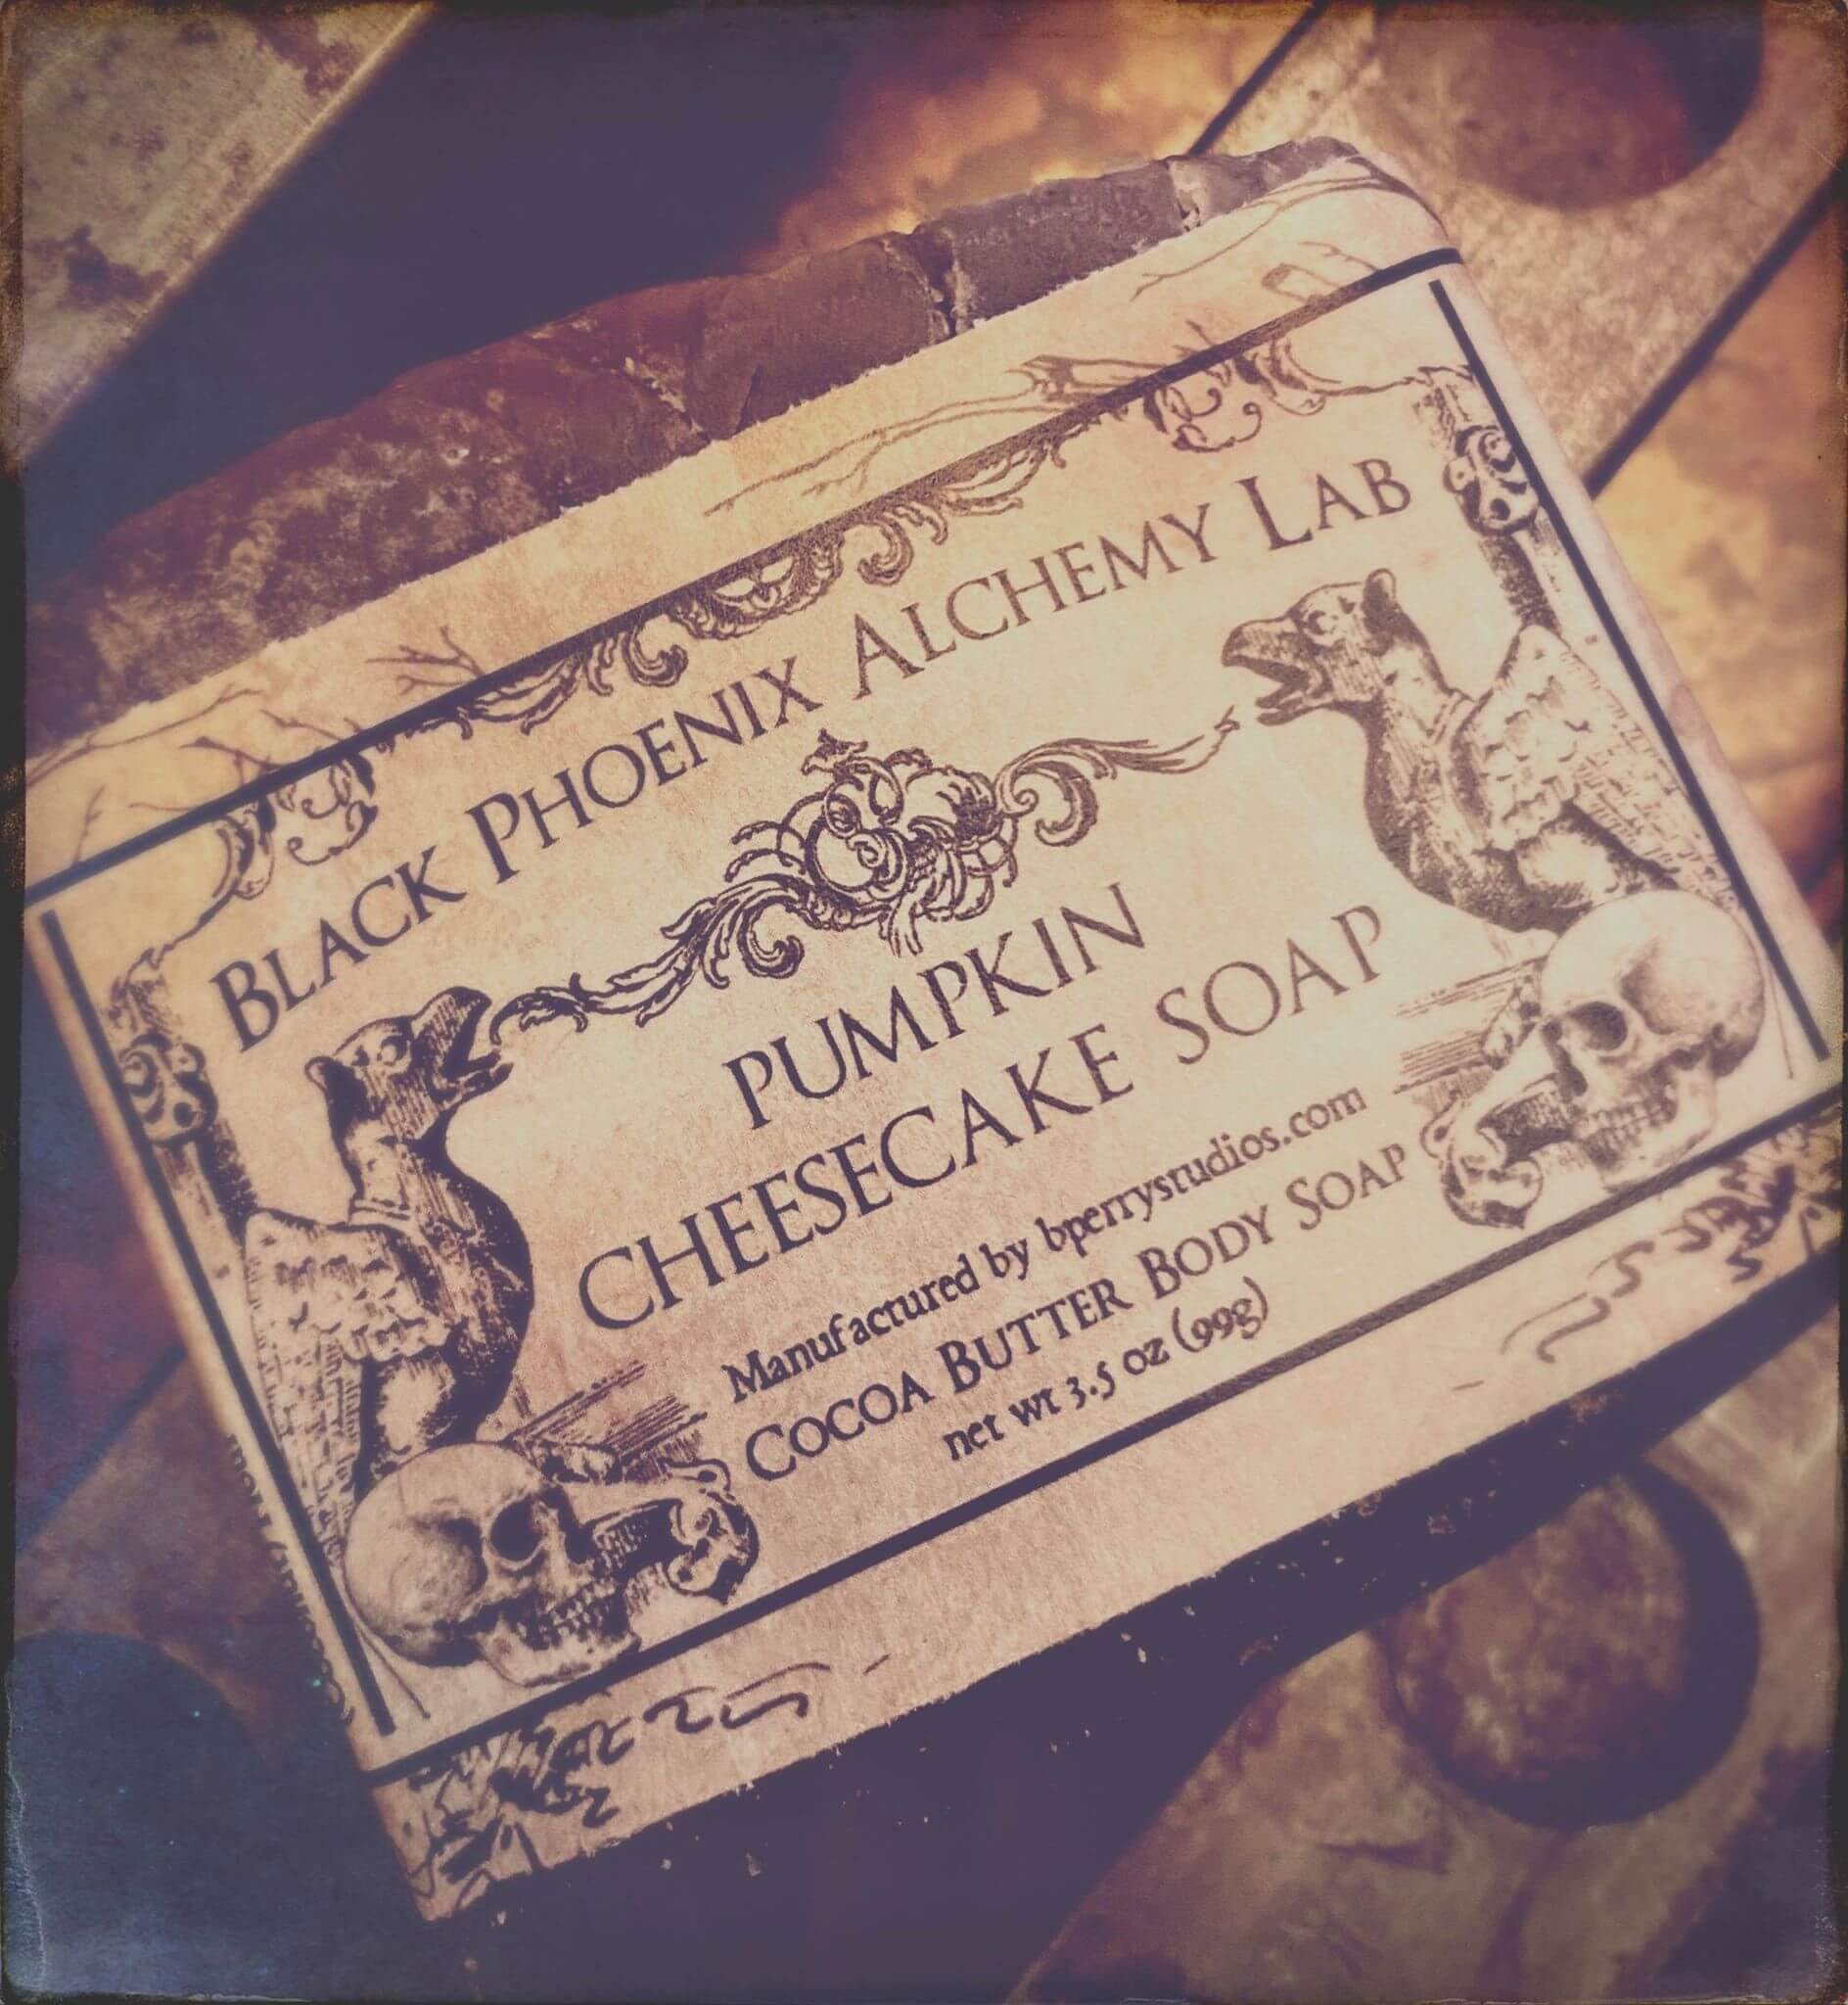 Pumpkin Cheesecake Soap Black Phoenix Alchemy Lab